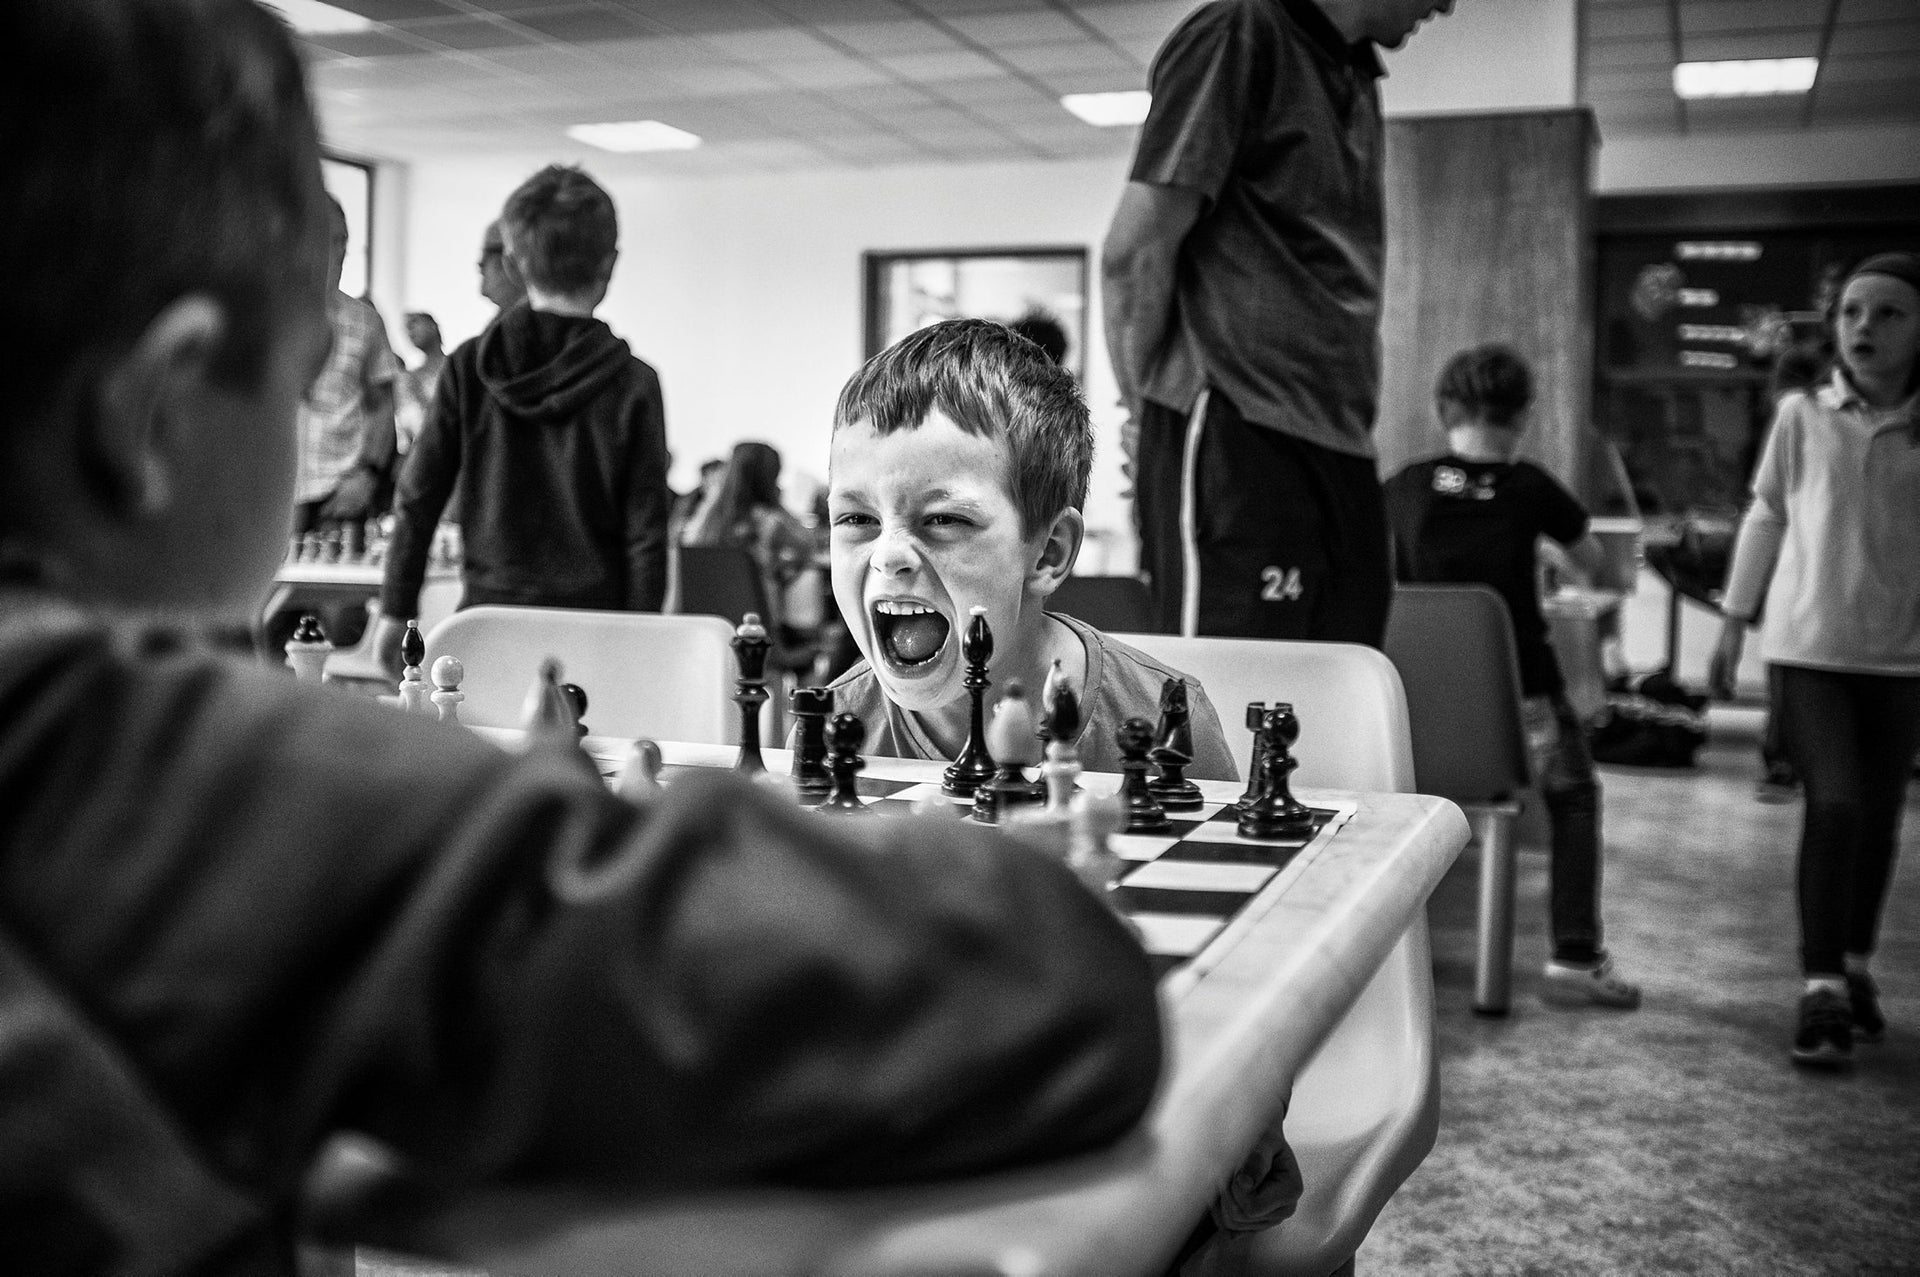 Sports, second prize stories - The chess player expresses his emotions during a game of chess.